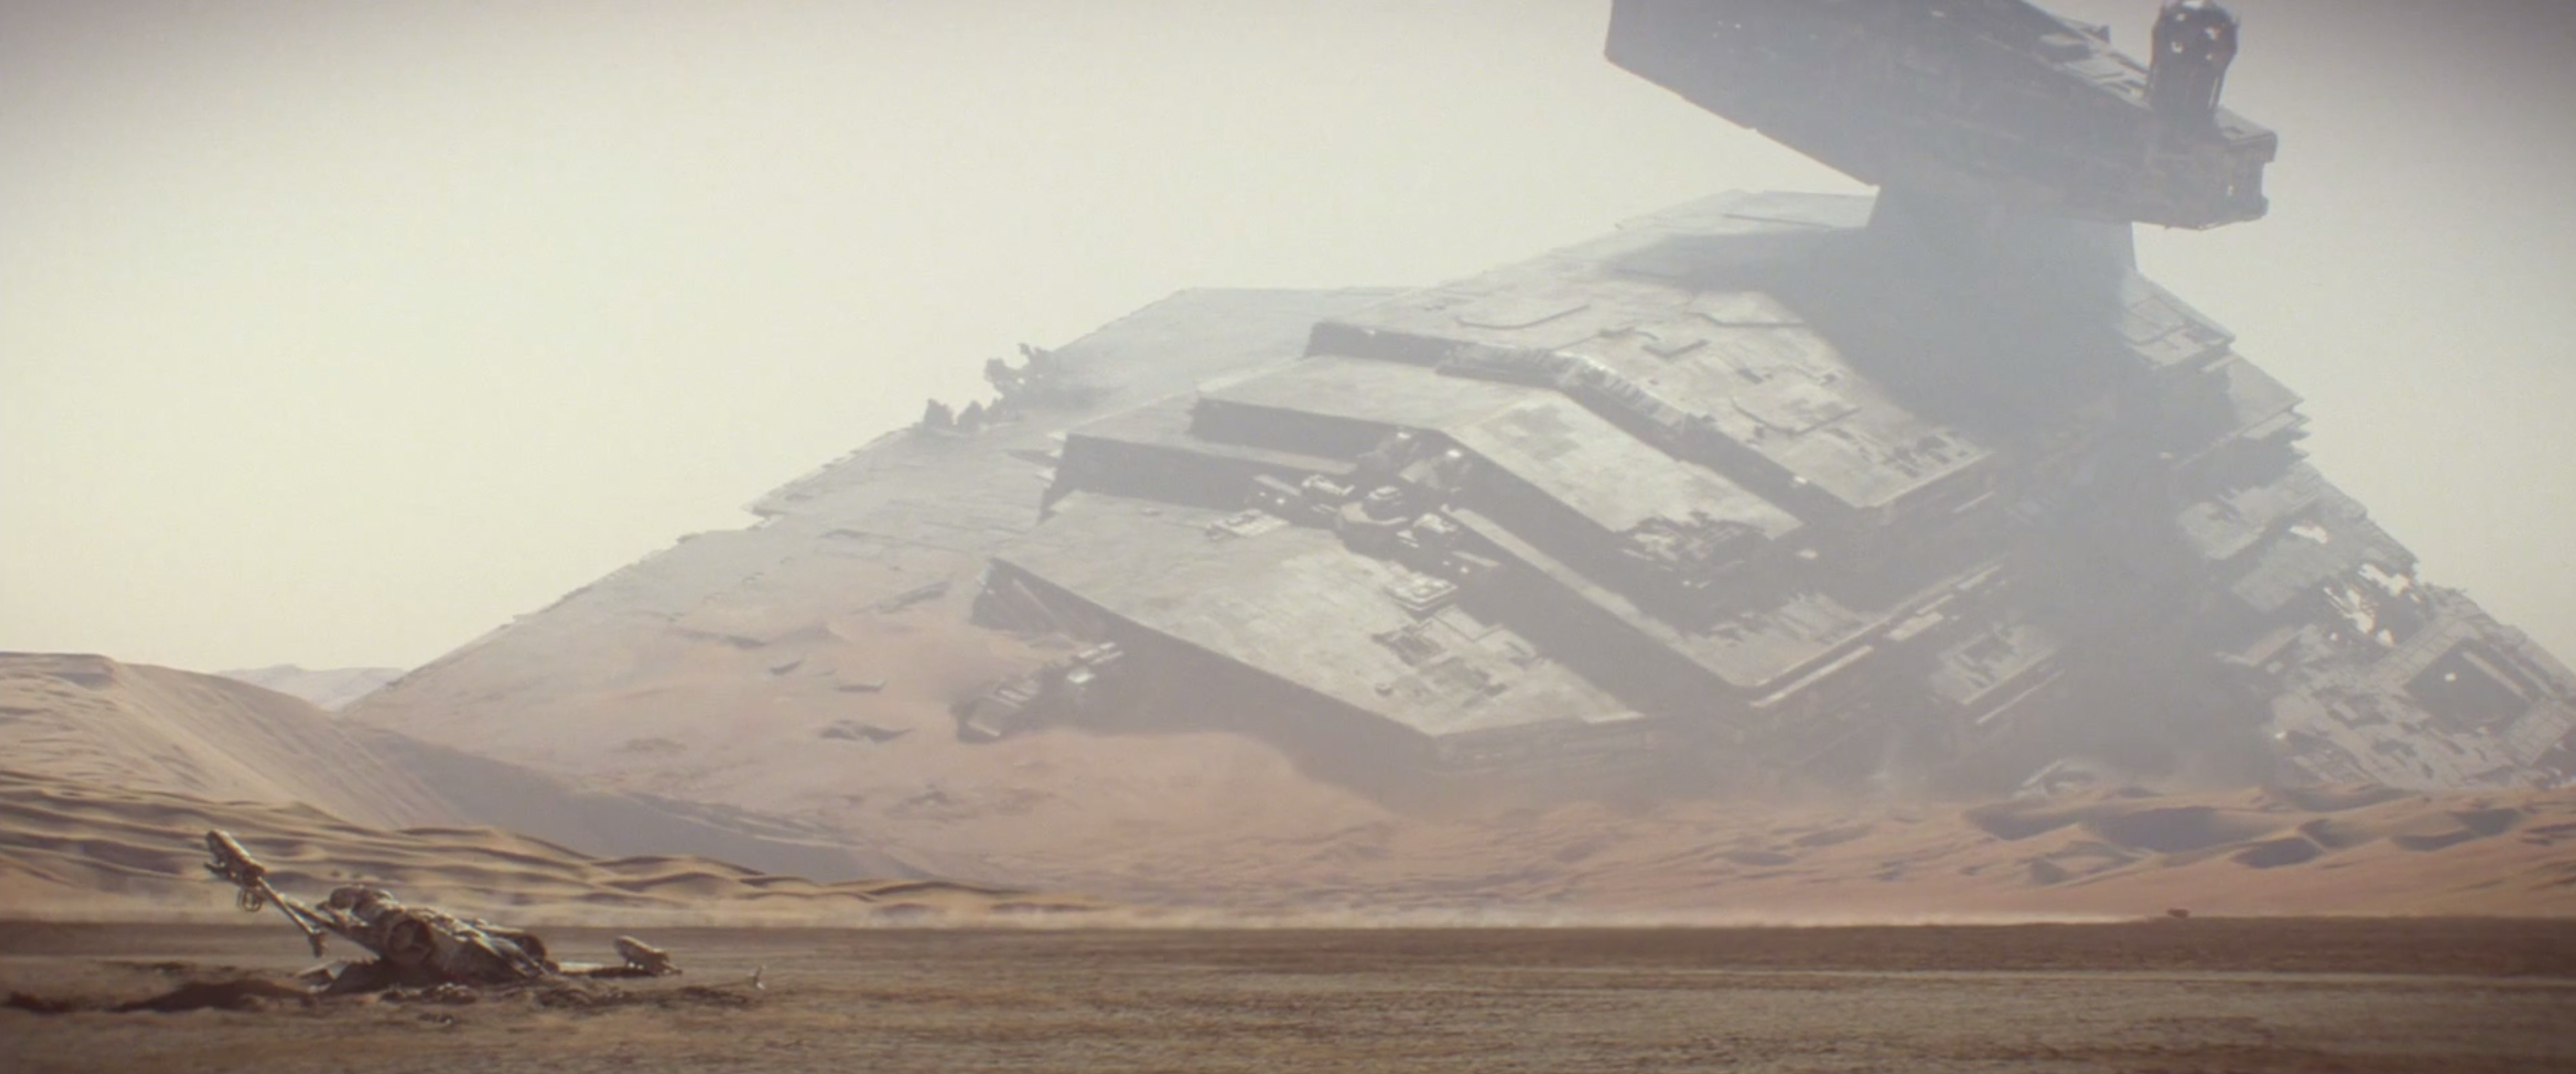 Star wars the force awakens official trailer 2 released